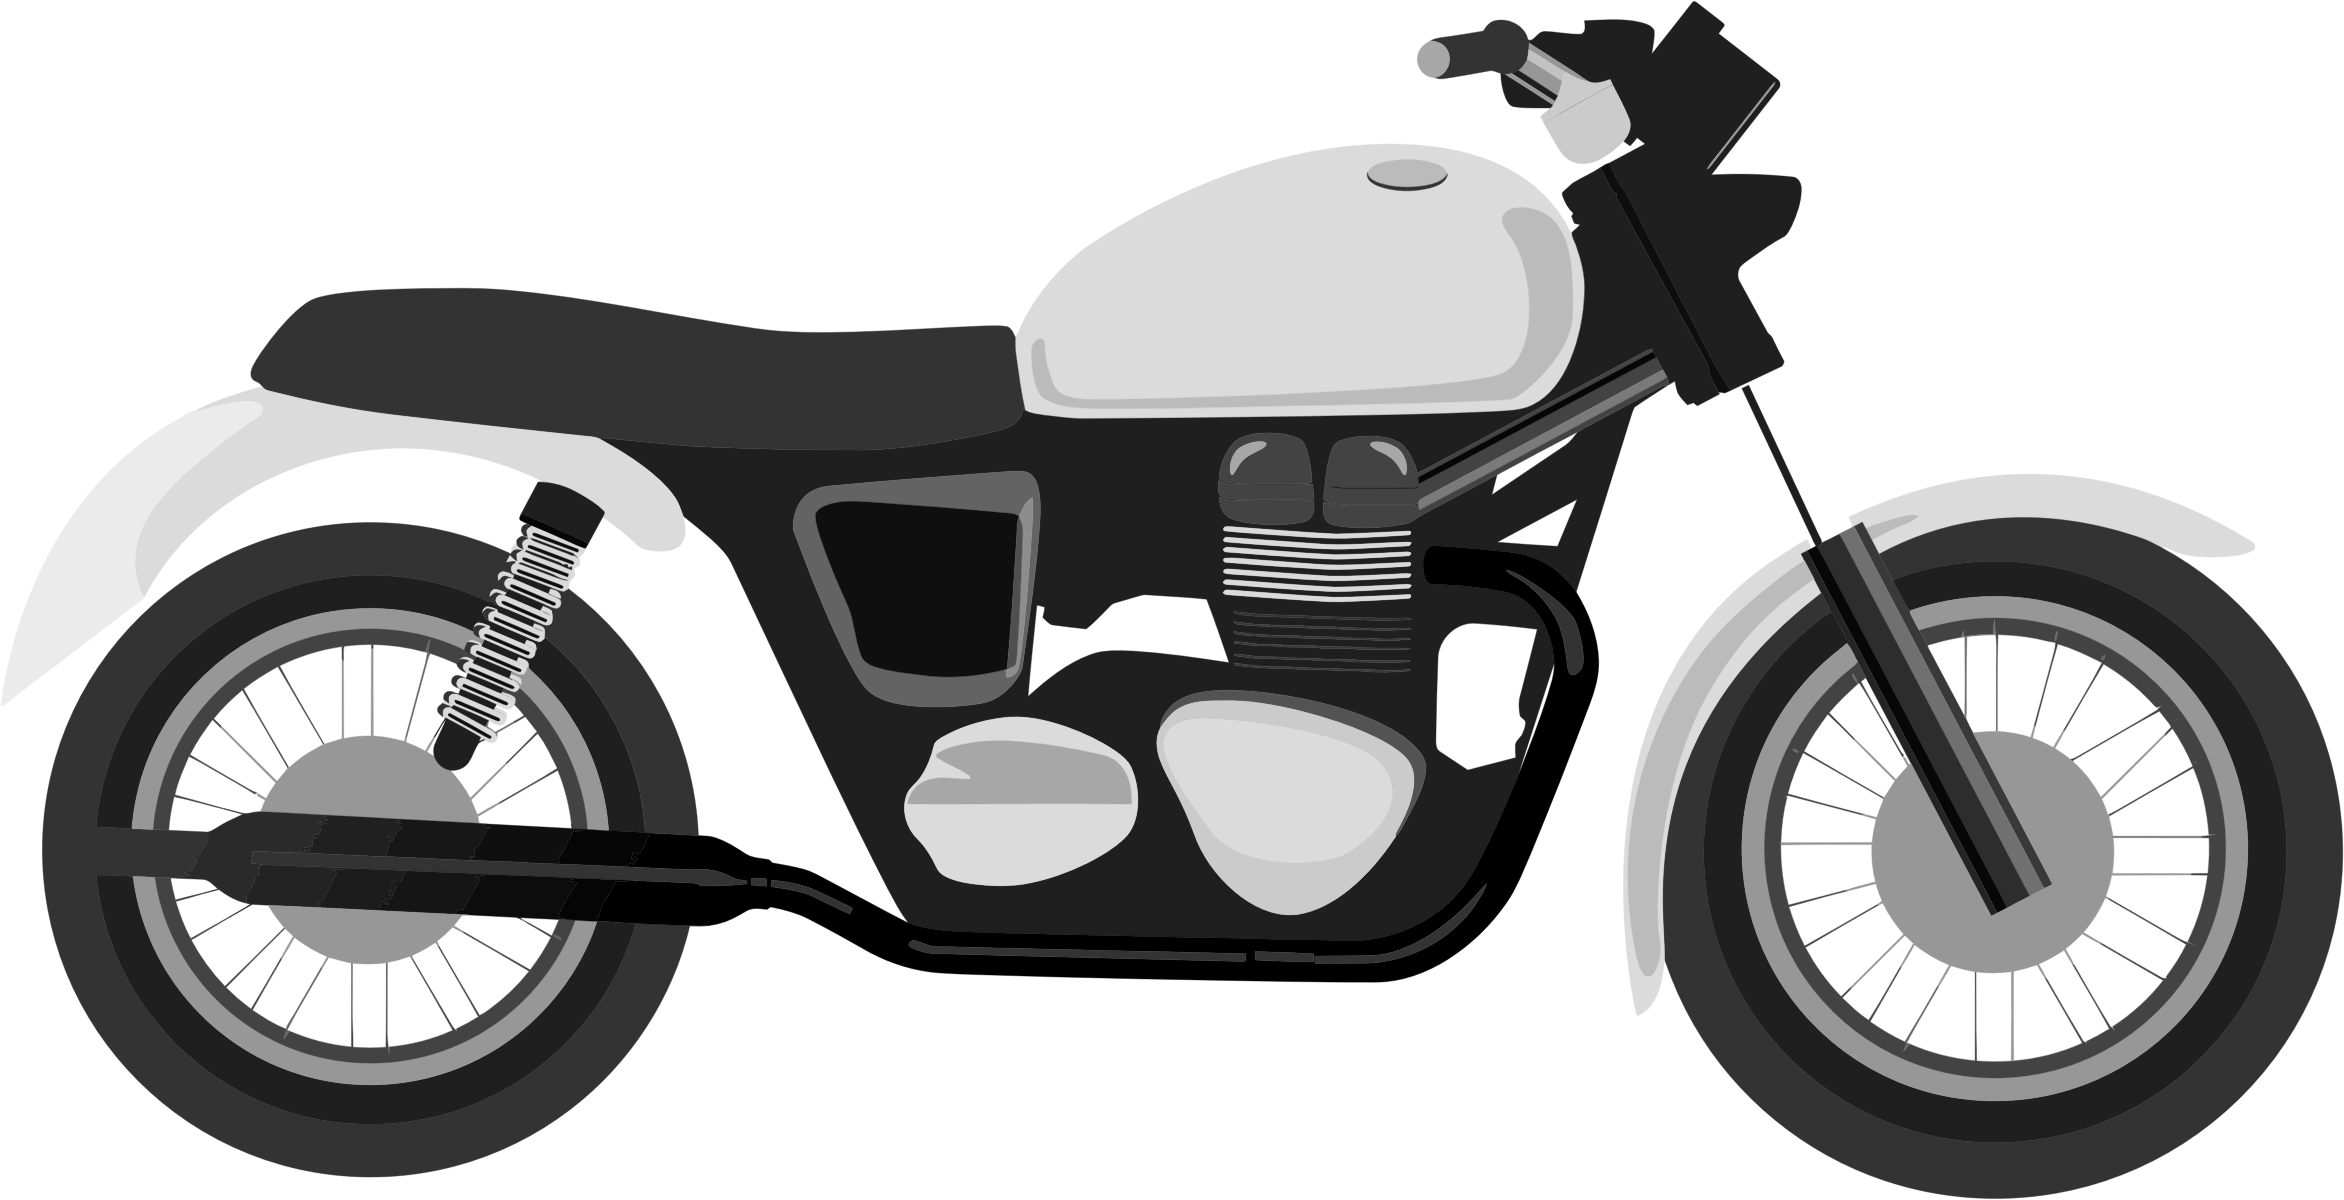 motorcycle clipart images coloured motorcycle in the vector depicted